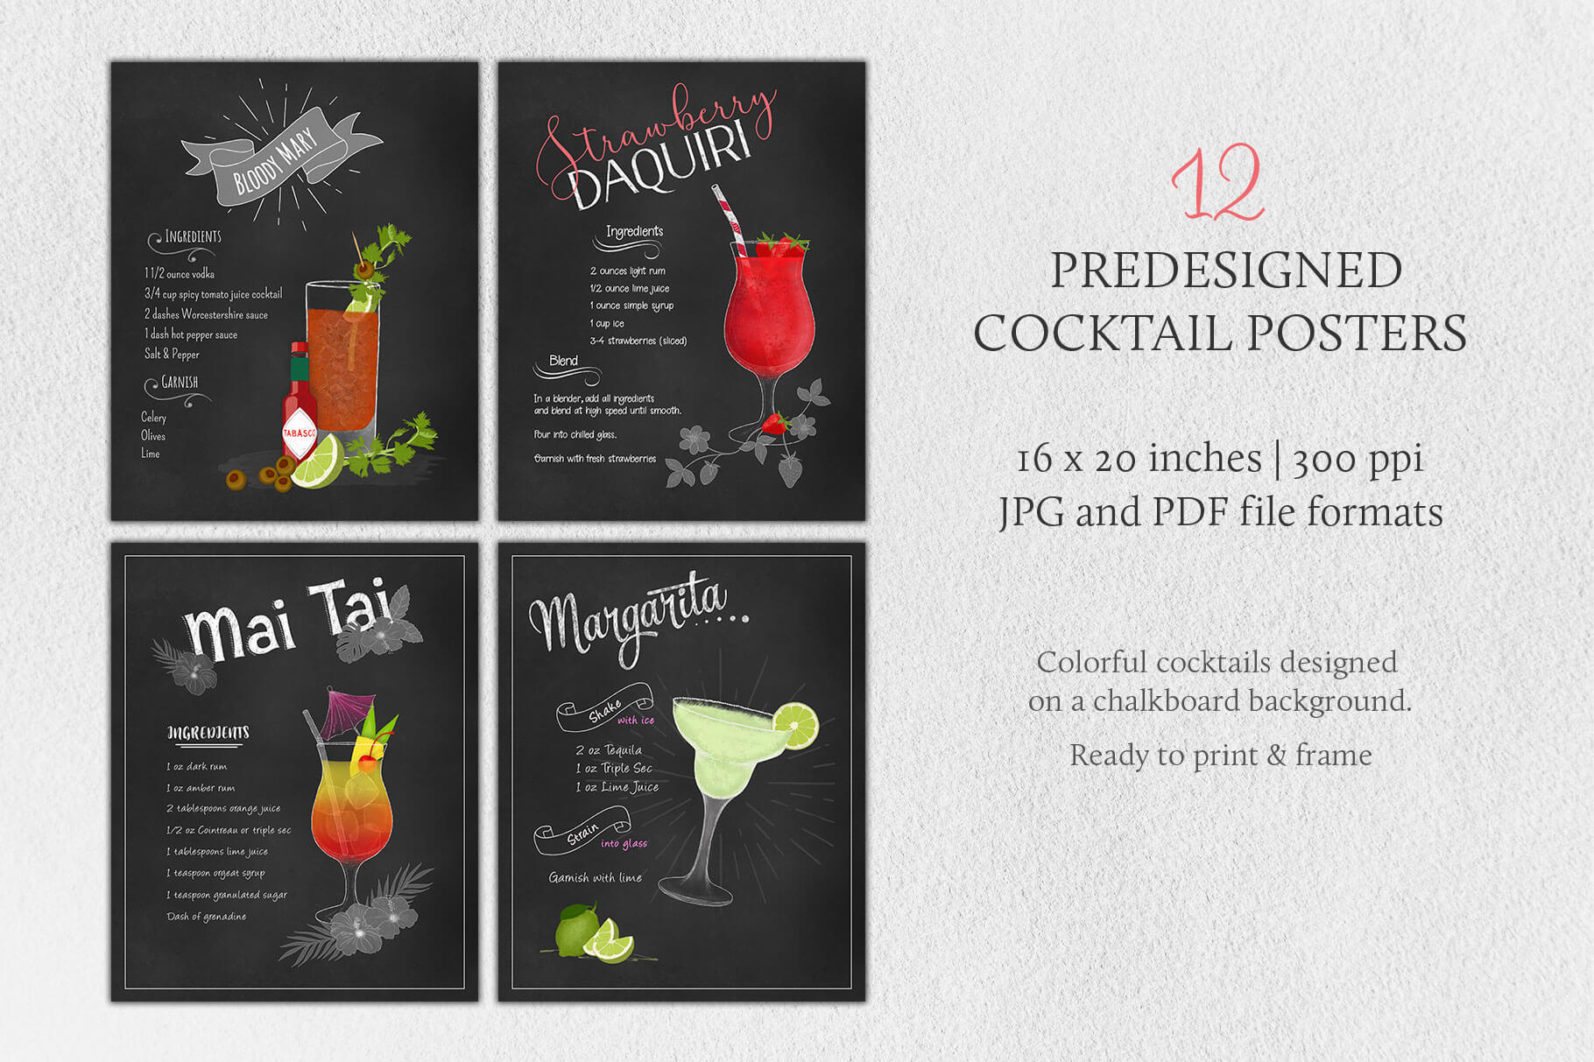 Cocktail Illustrations & Posters - page posters 1 -